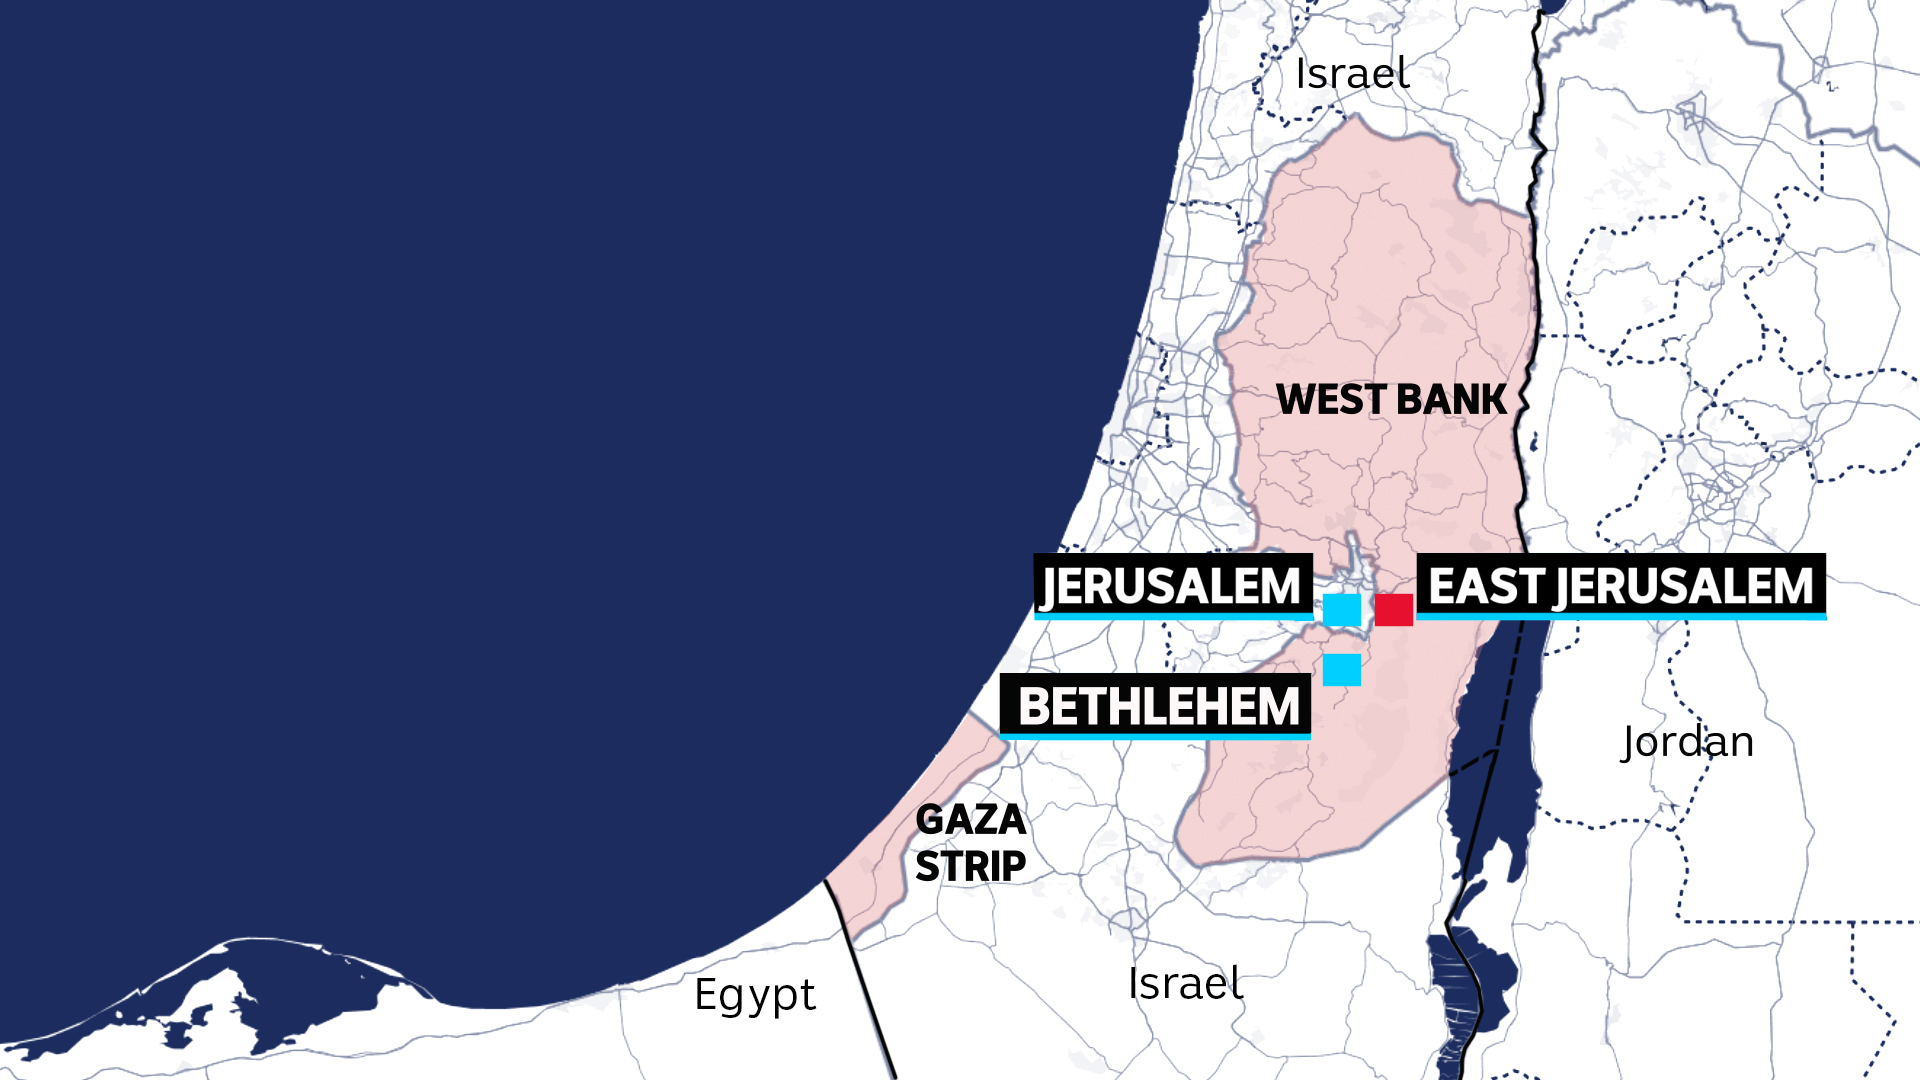 Gaza is to the bottom left, along the coast while the West Bank is along the western border with Jordan.